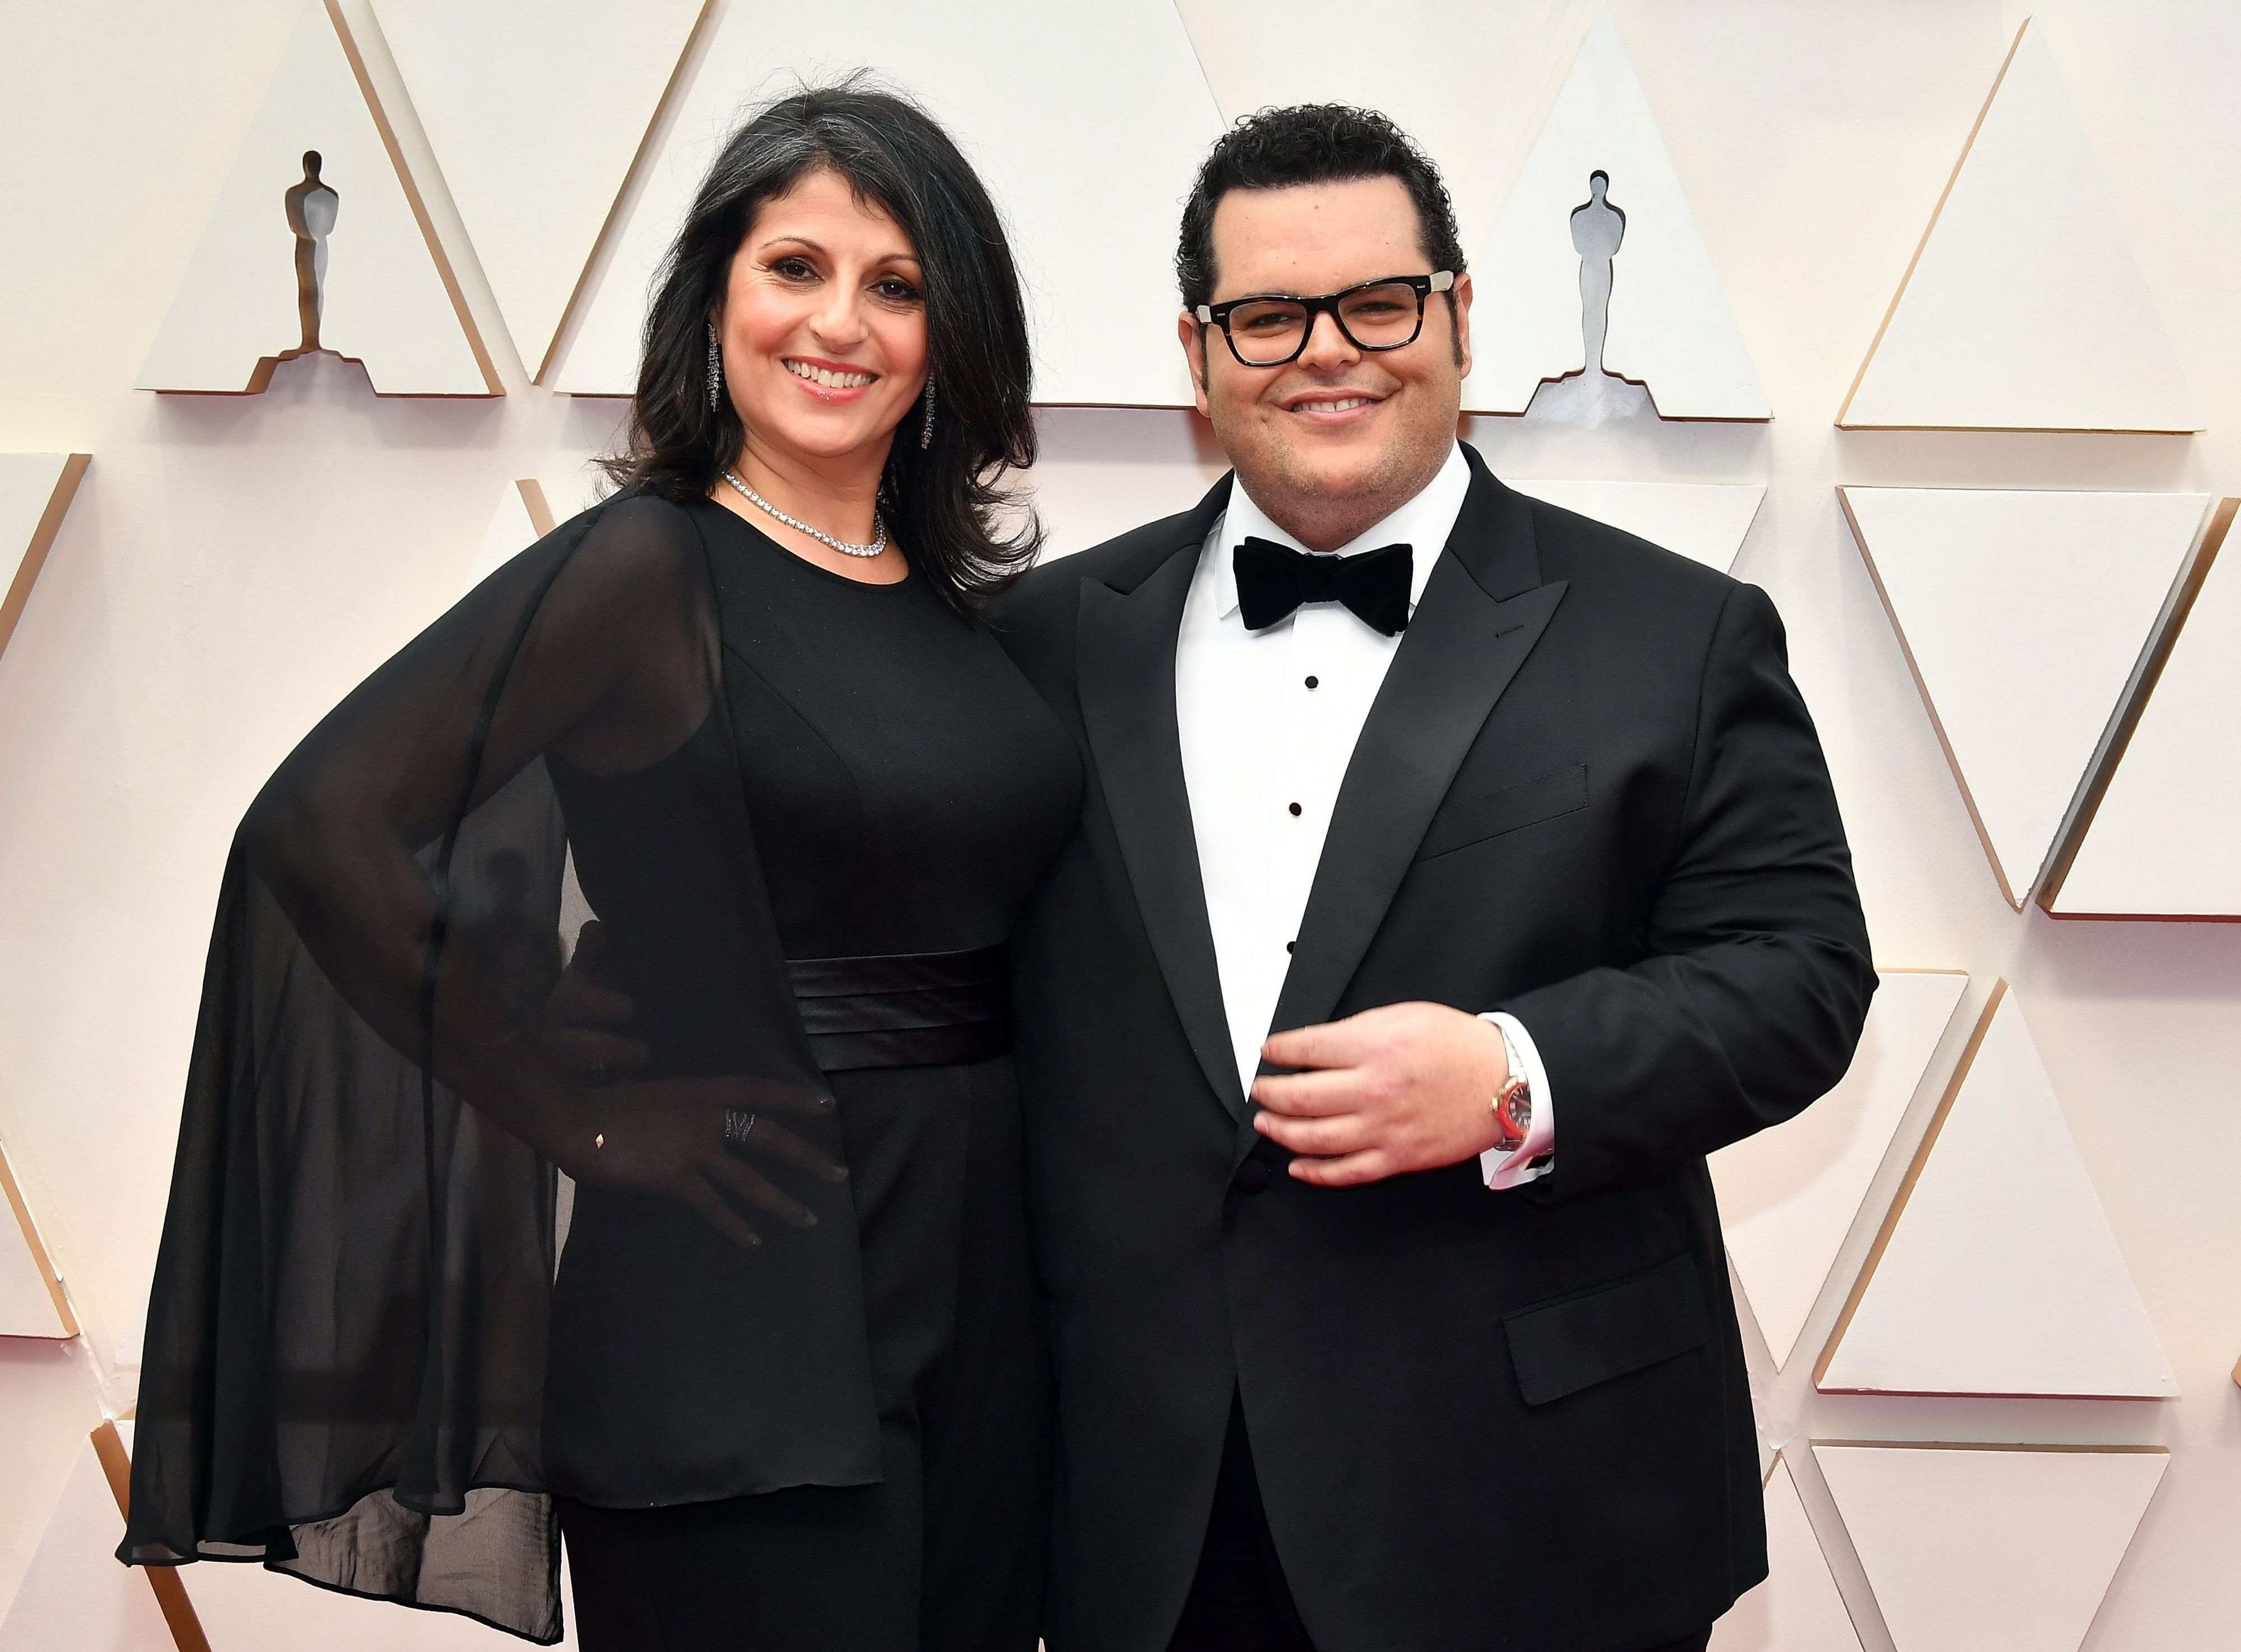 Josh Gad and Ida Darvish at an event for The Oscars (2020)